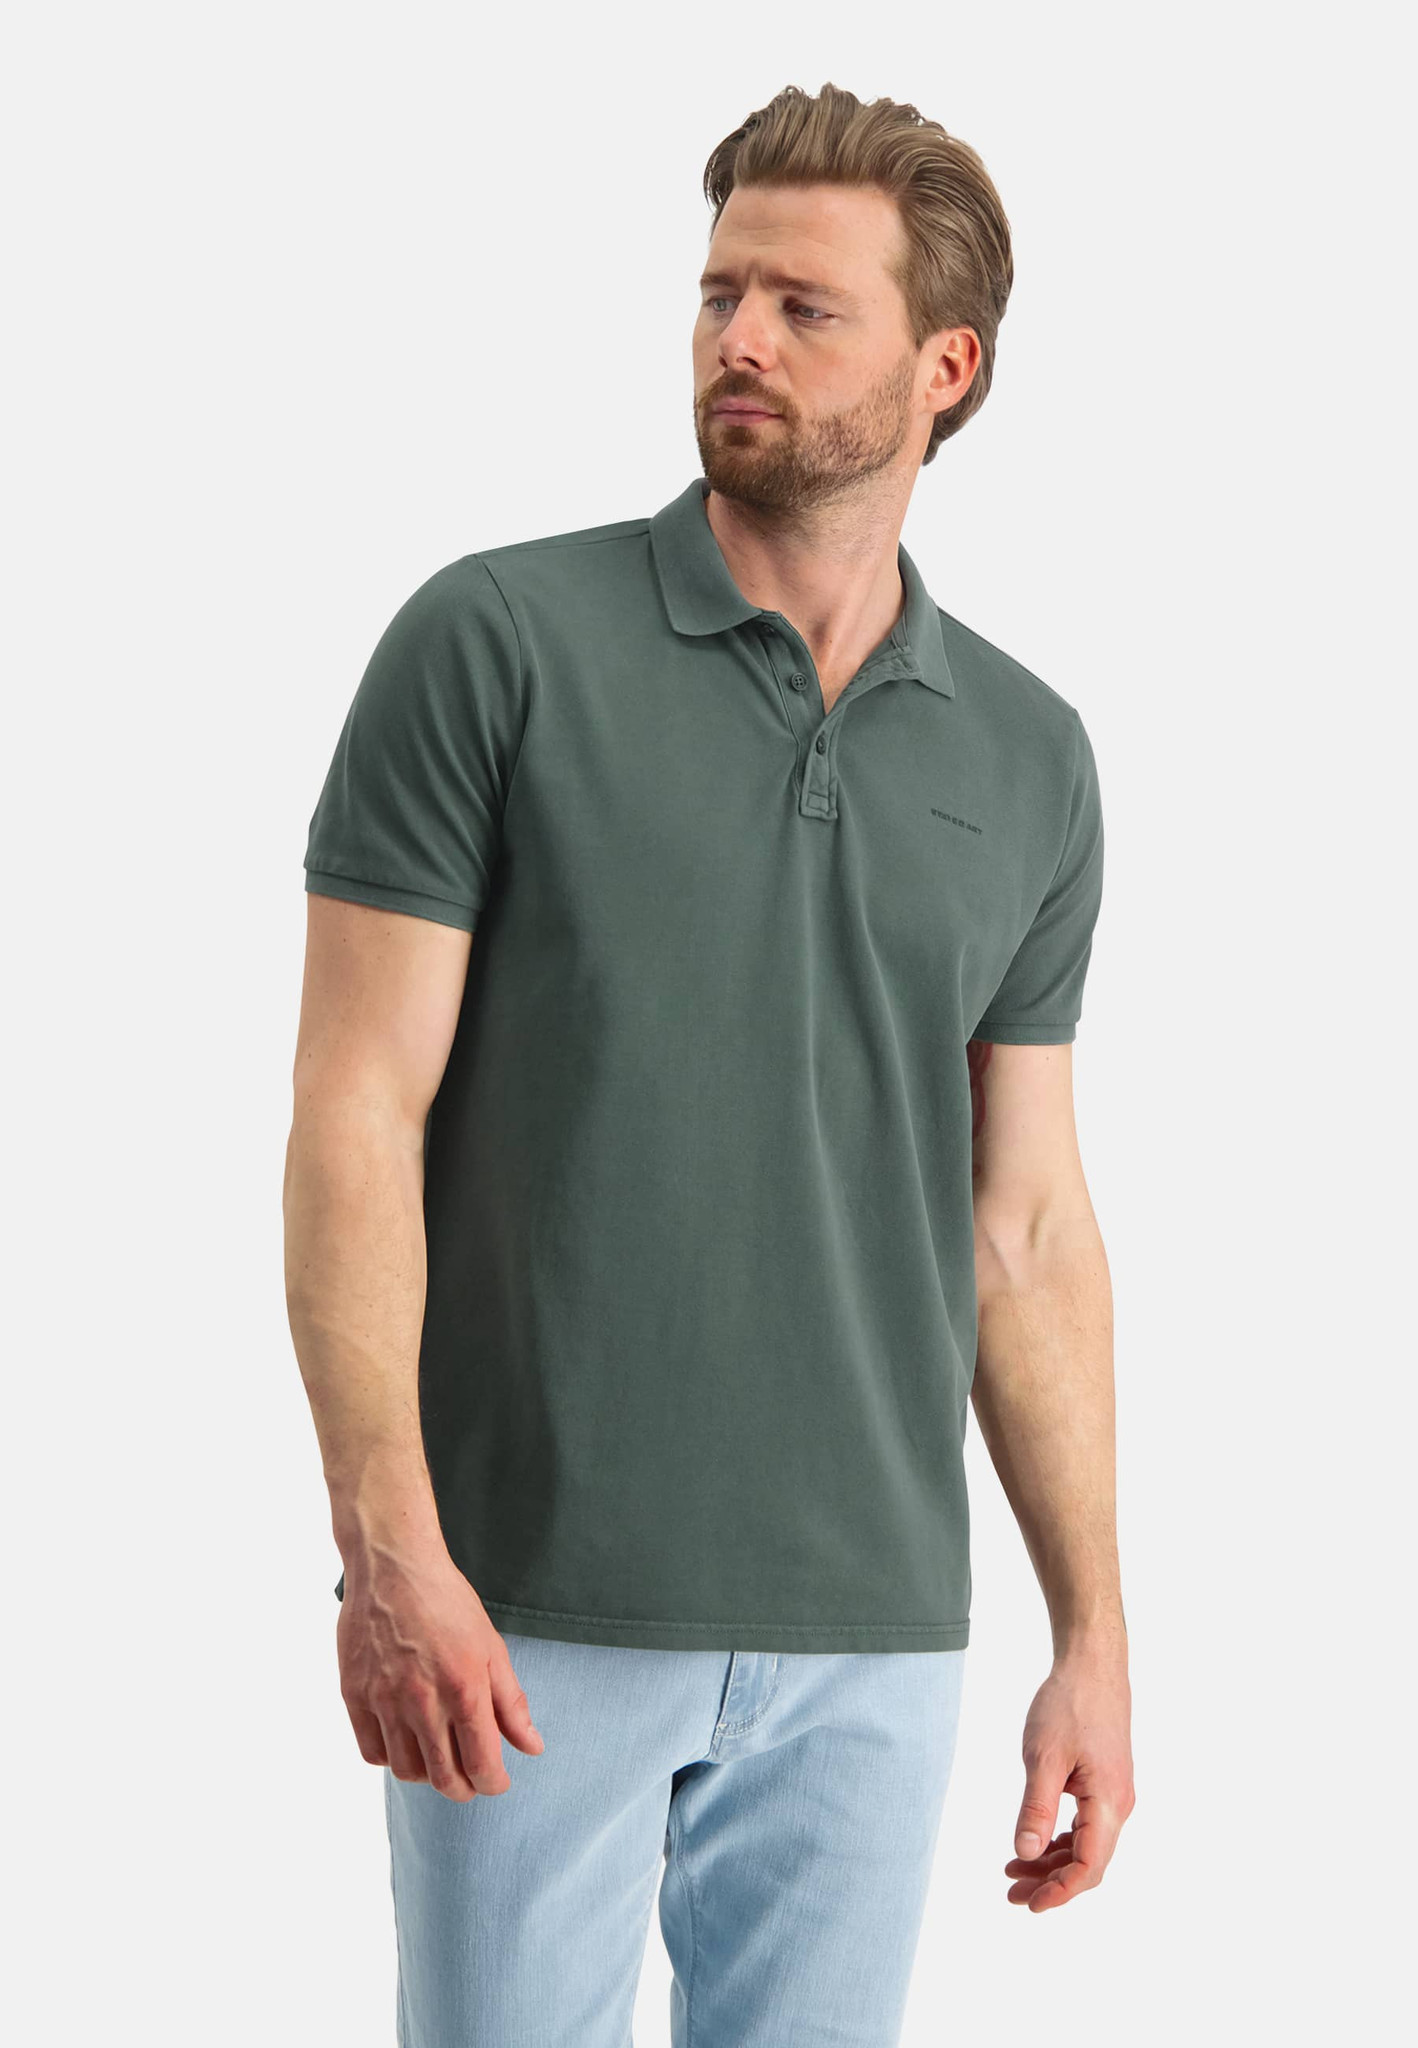 State of Art Polo State of Art 461-11525-3900